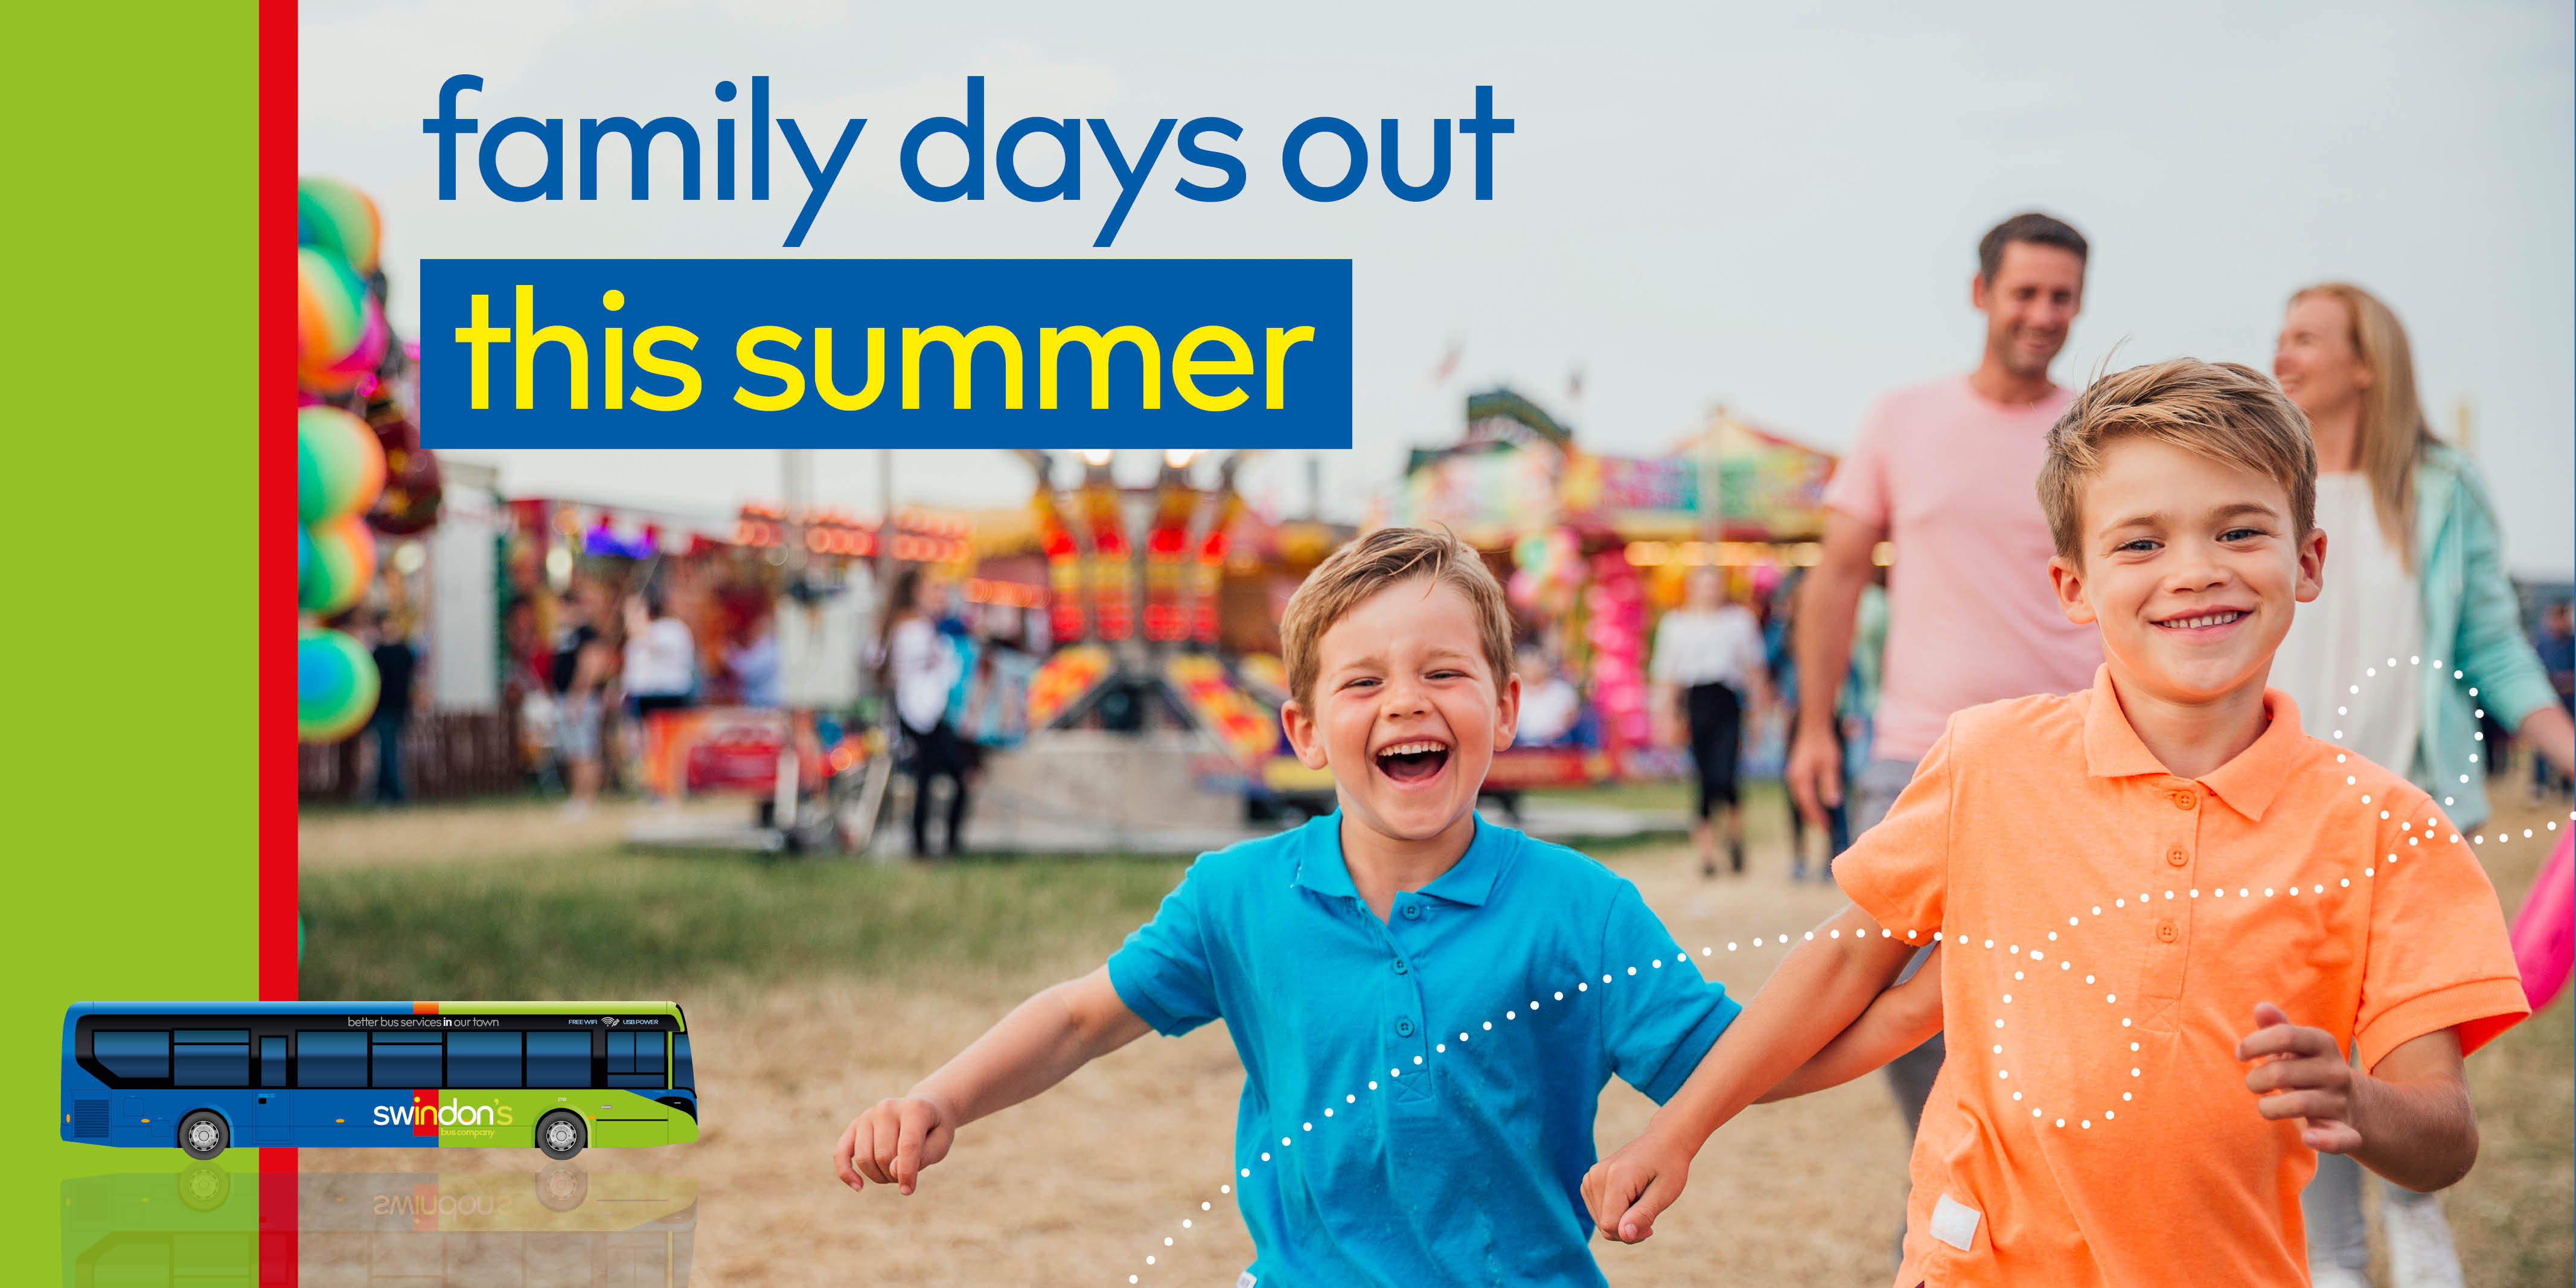 Family days out this summer